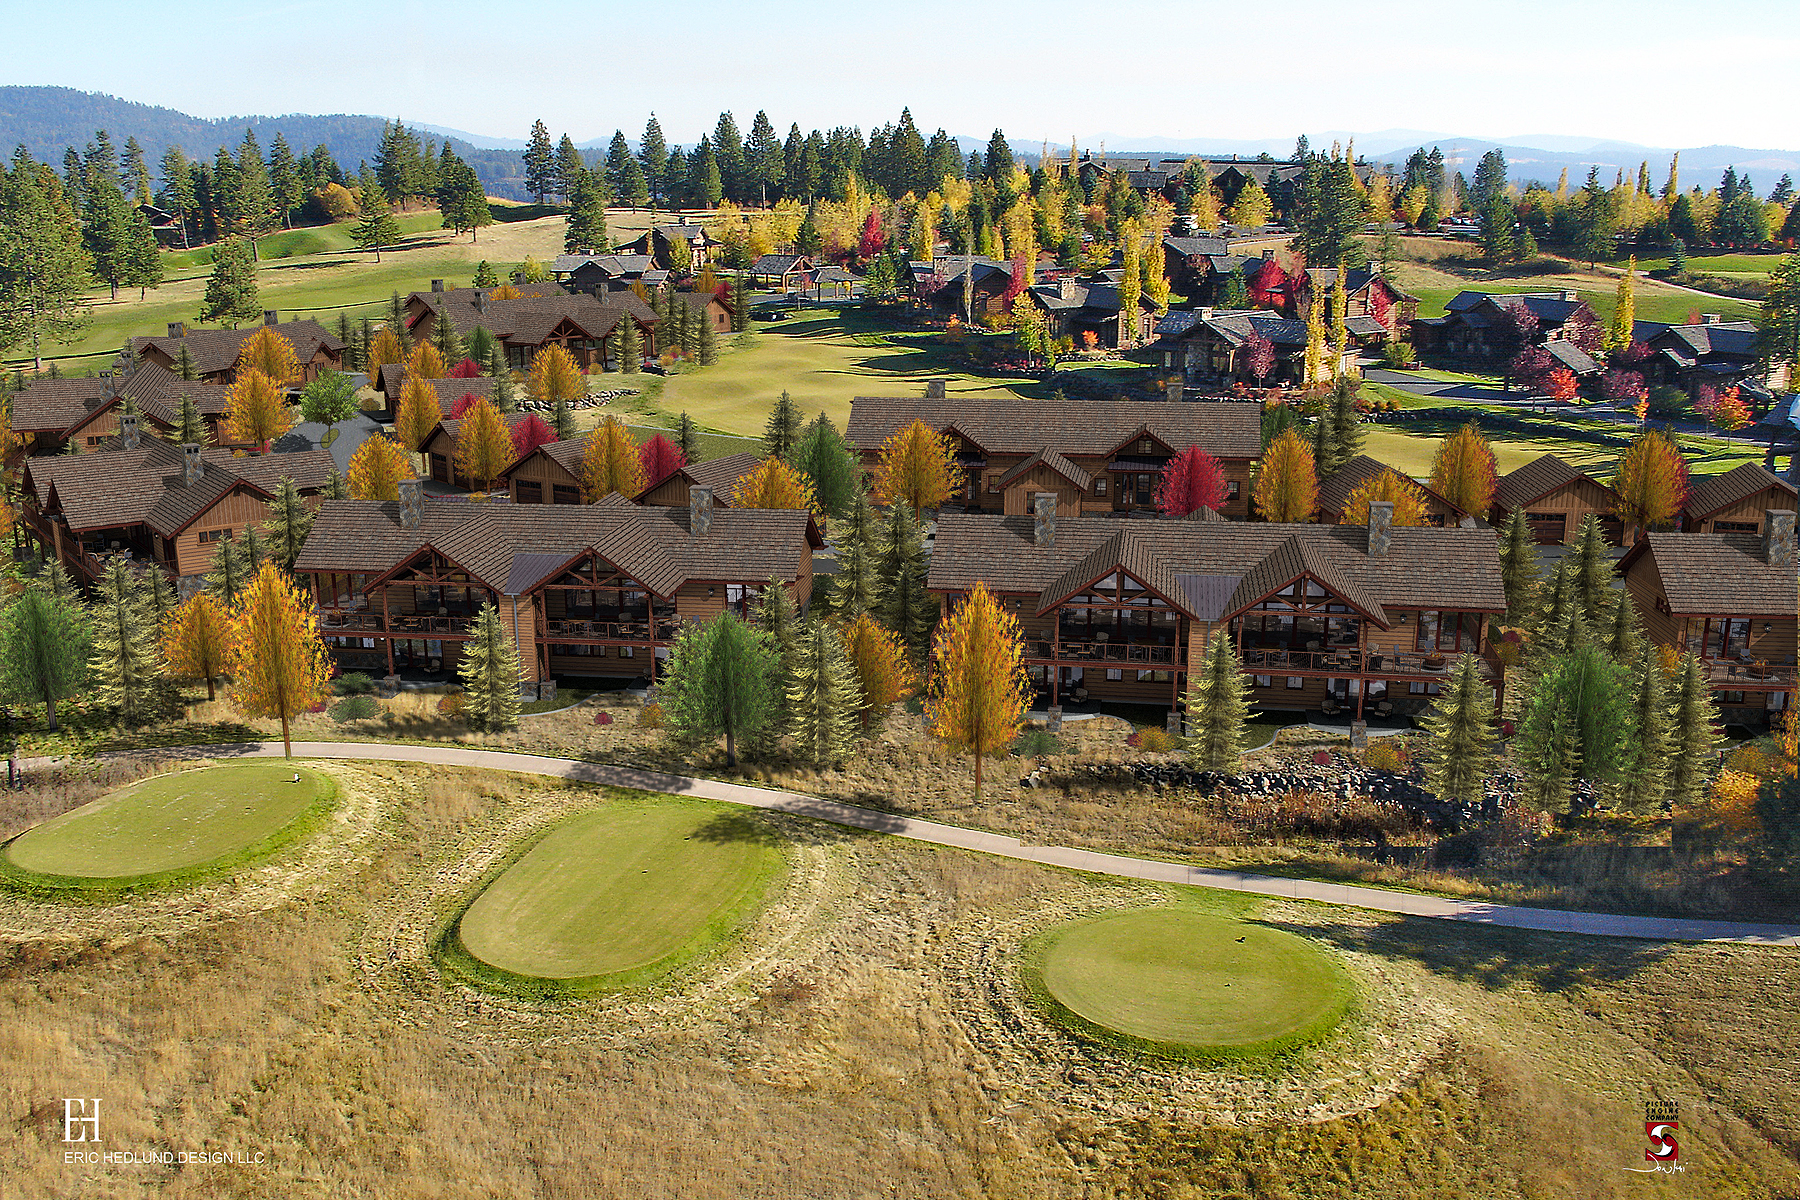 Condominium for Sale at The Golf Cottages Phase 2 15 Kimberlite Coeur D Alene, Idaho, 83814 United States